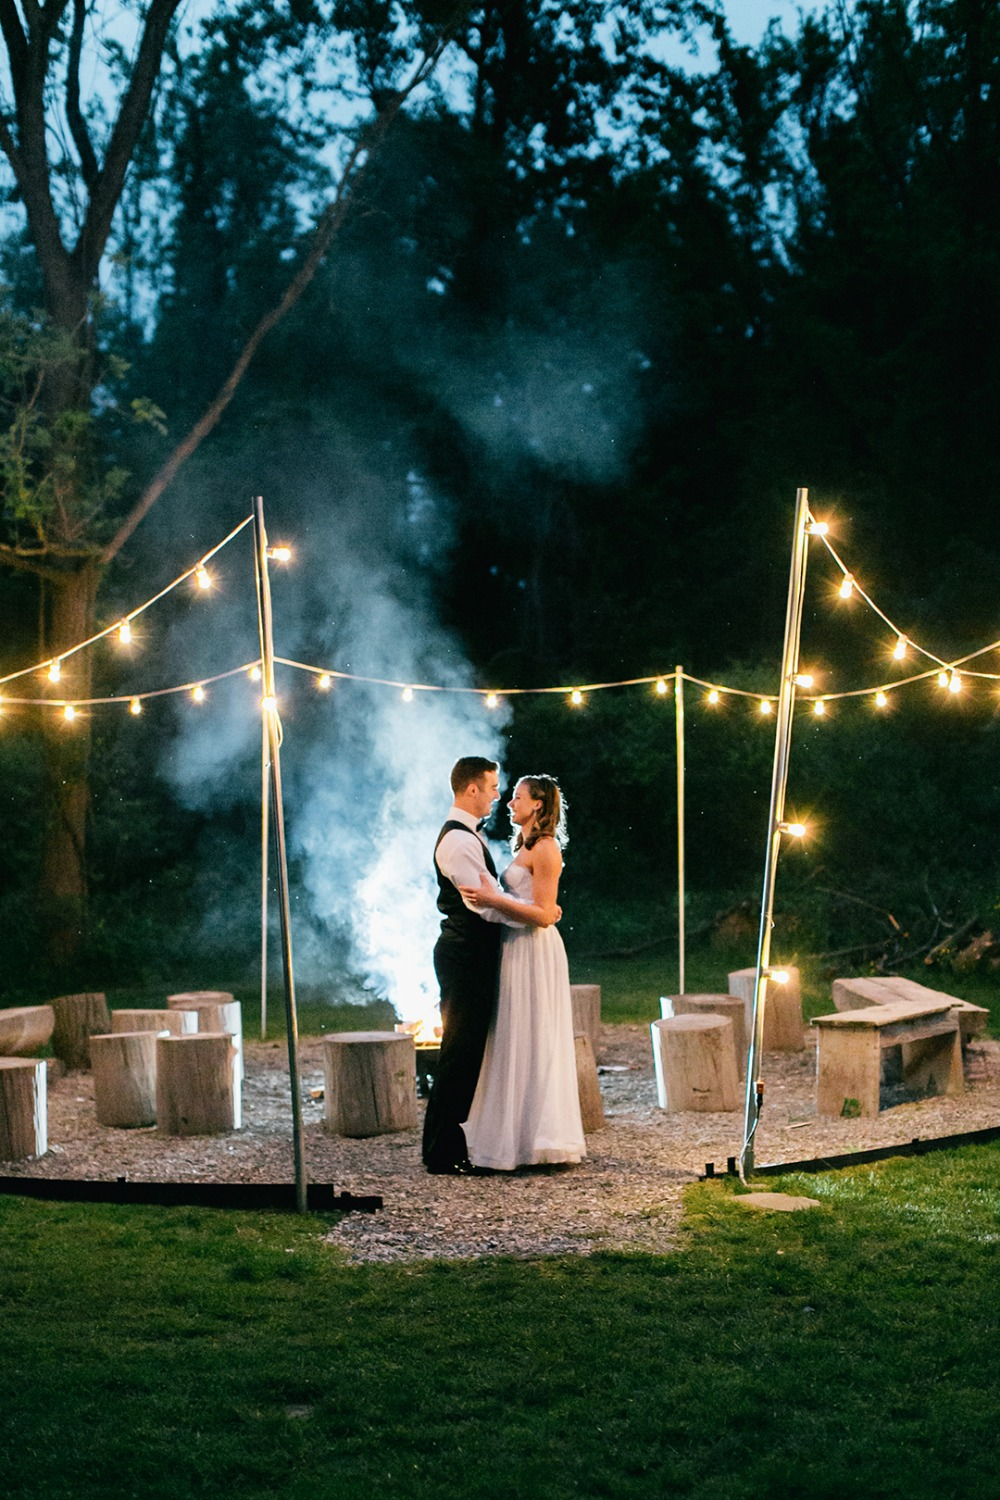 Wedding firepit idea